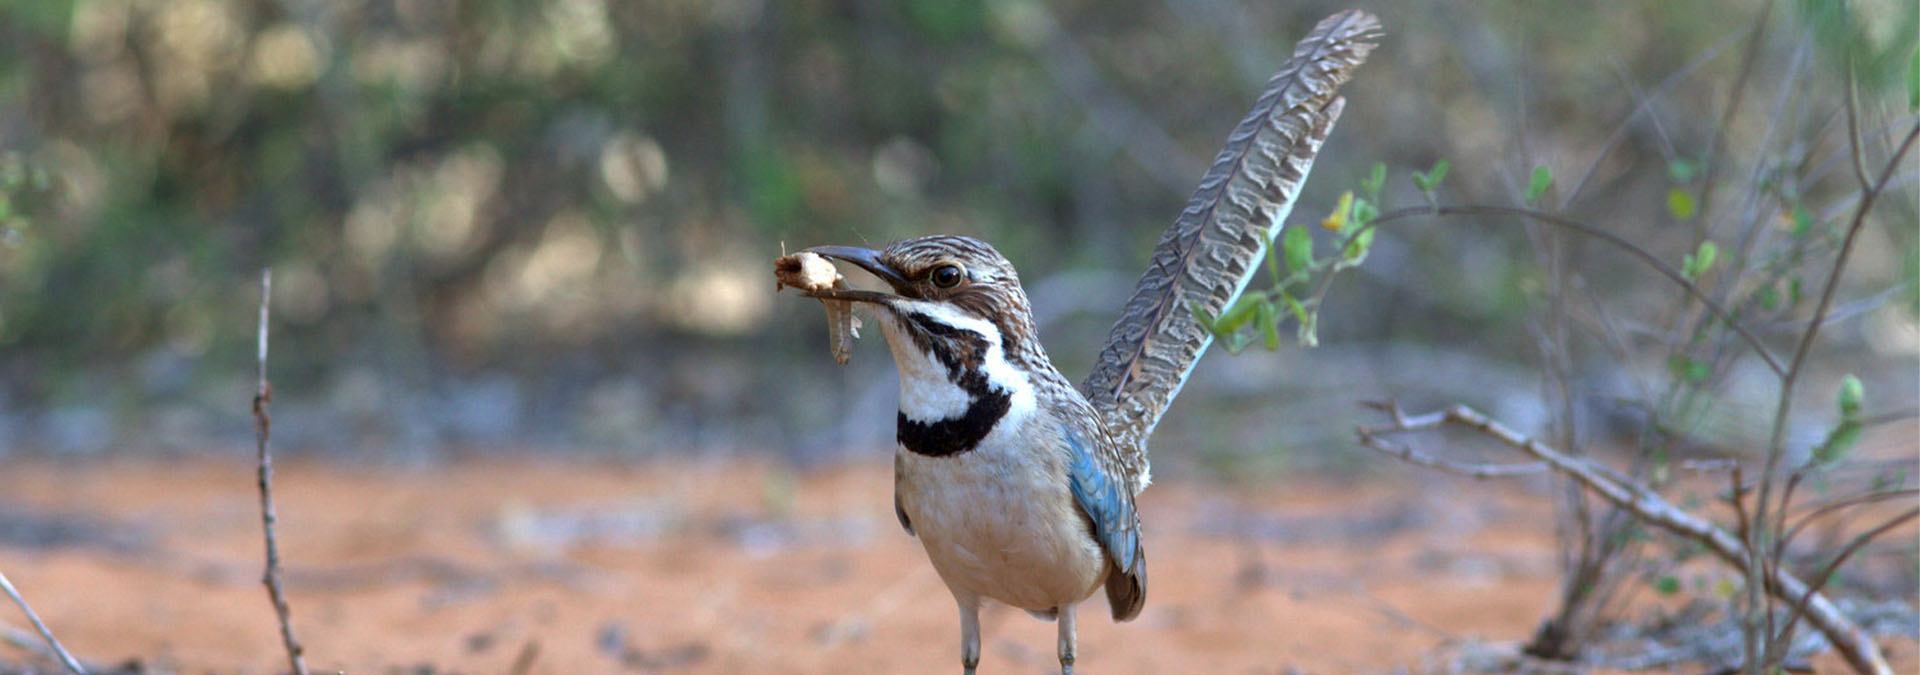 Madagascar - Comprehensive Birding Tour